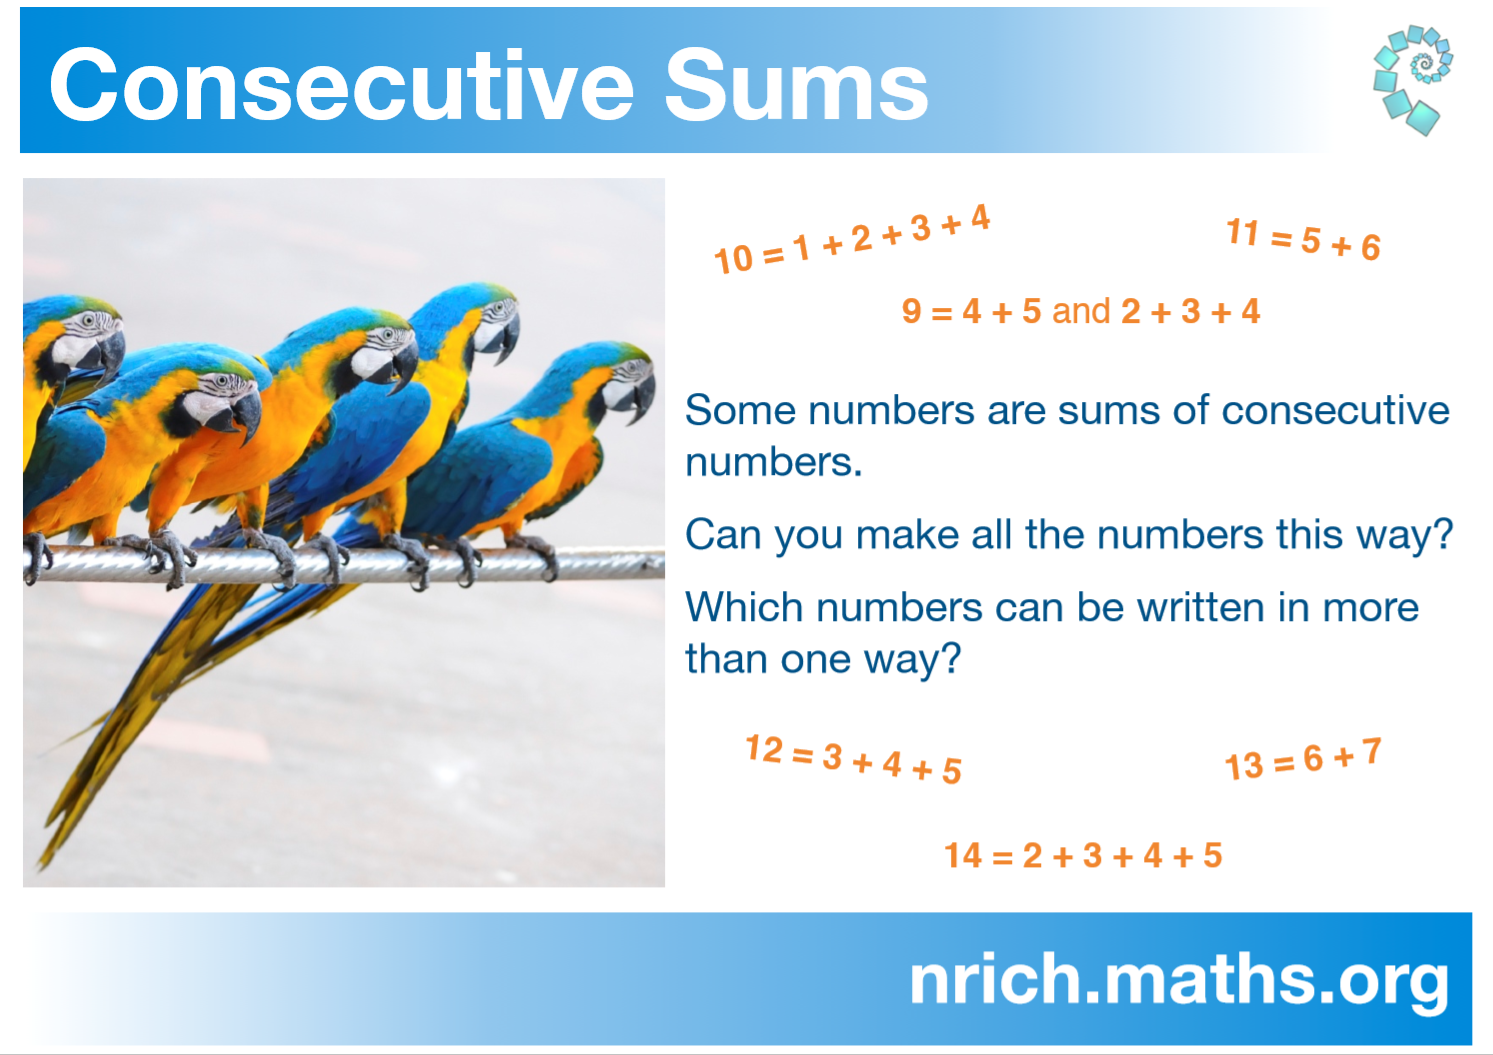 Consecutive Sums Poster : nrich.maths.org